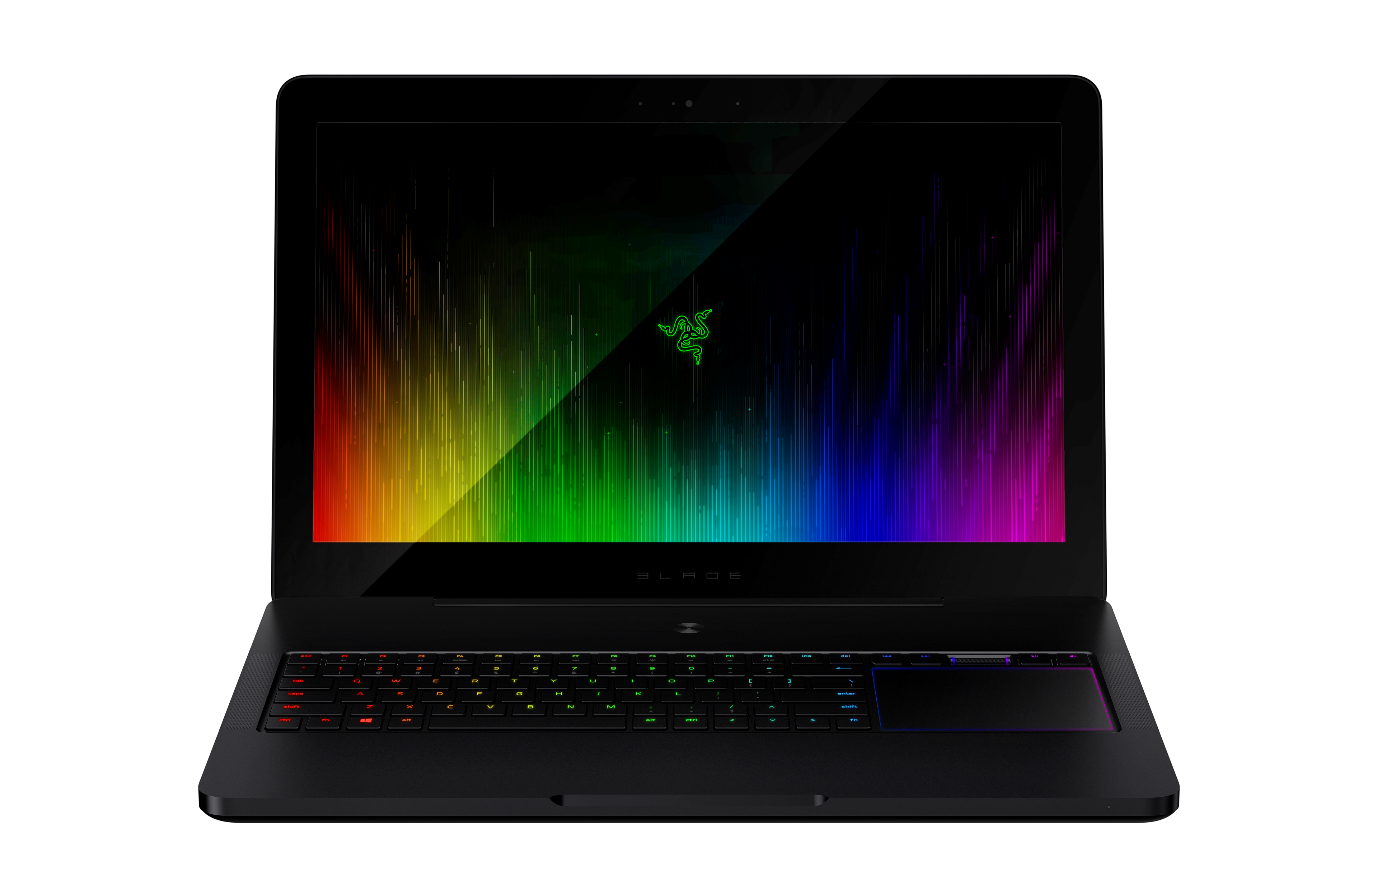 Razer Unveils The Gaming Desktop in a Laptop: The New Razer Blade Pro Gaming Notebook